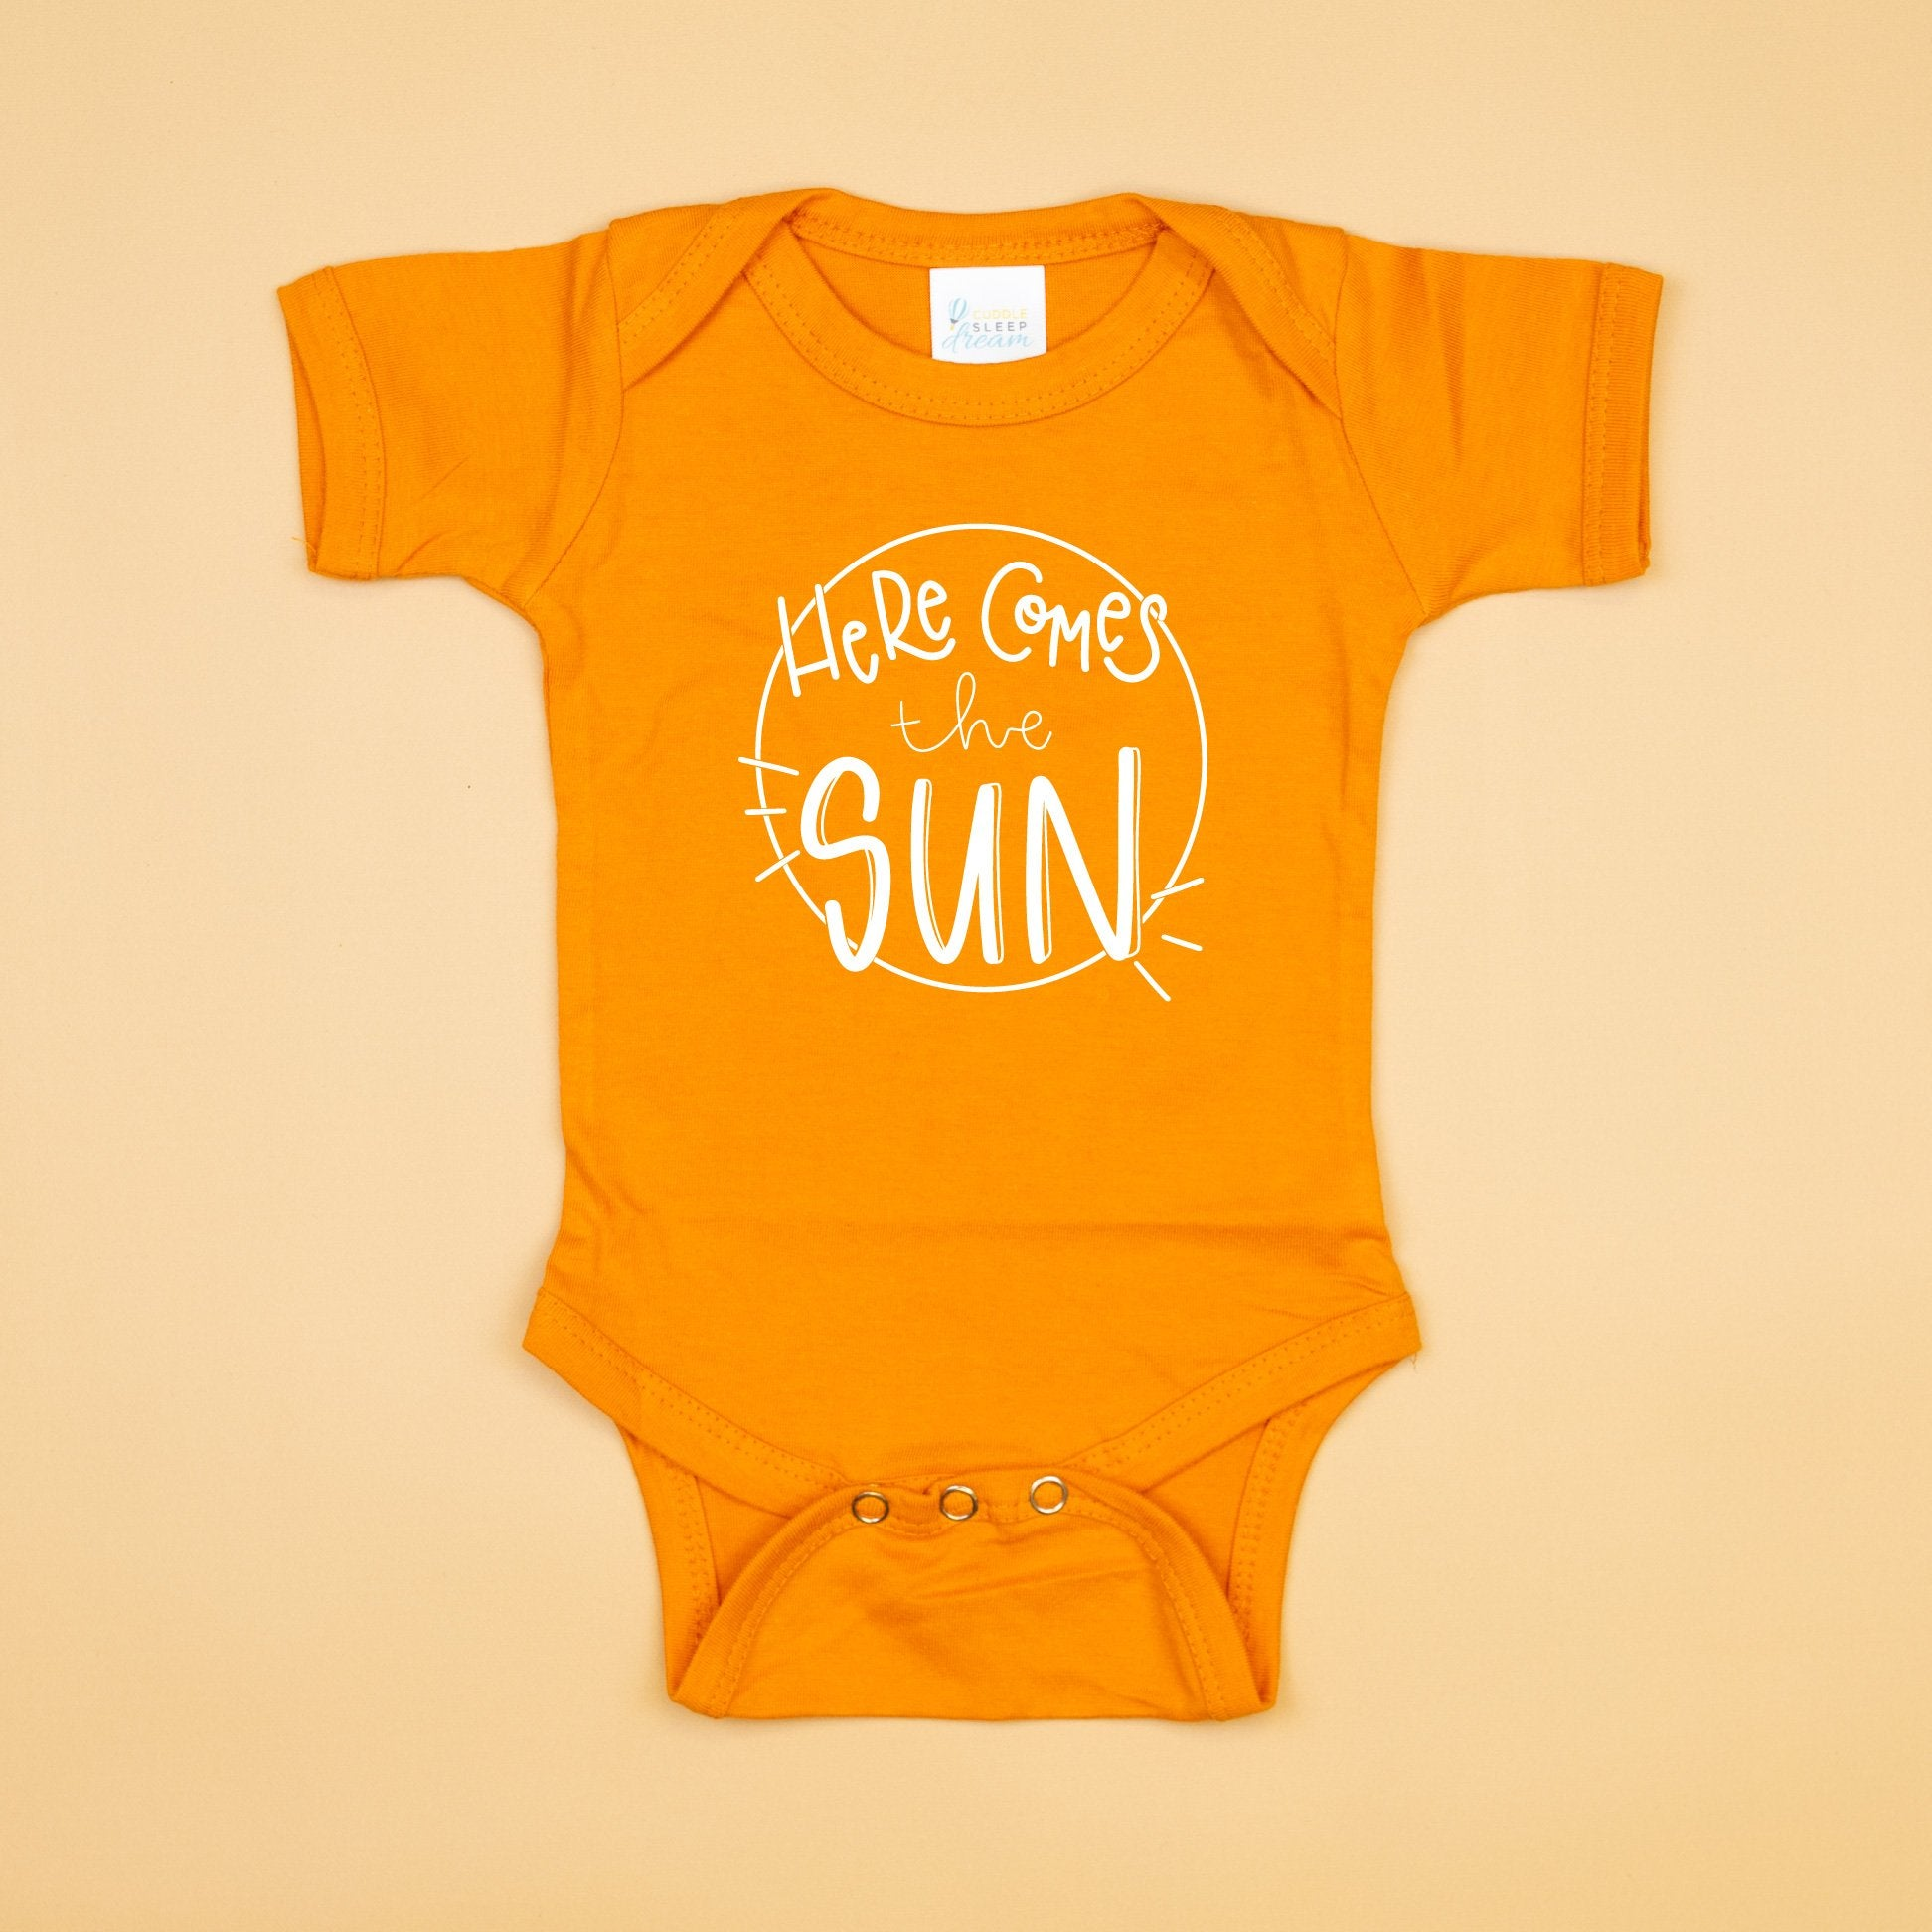 Cuddle Sleep Dream Here Comes the Sun Onesie